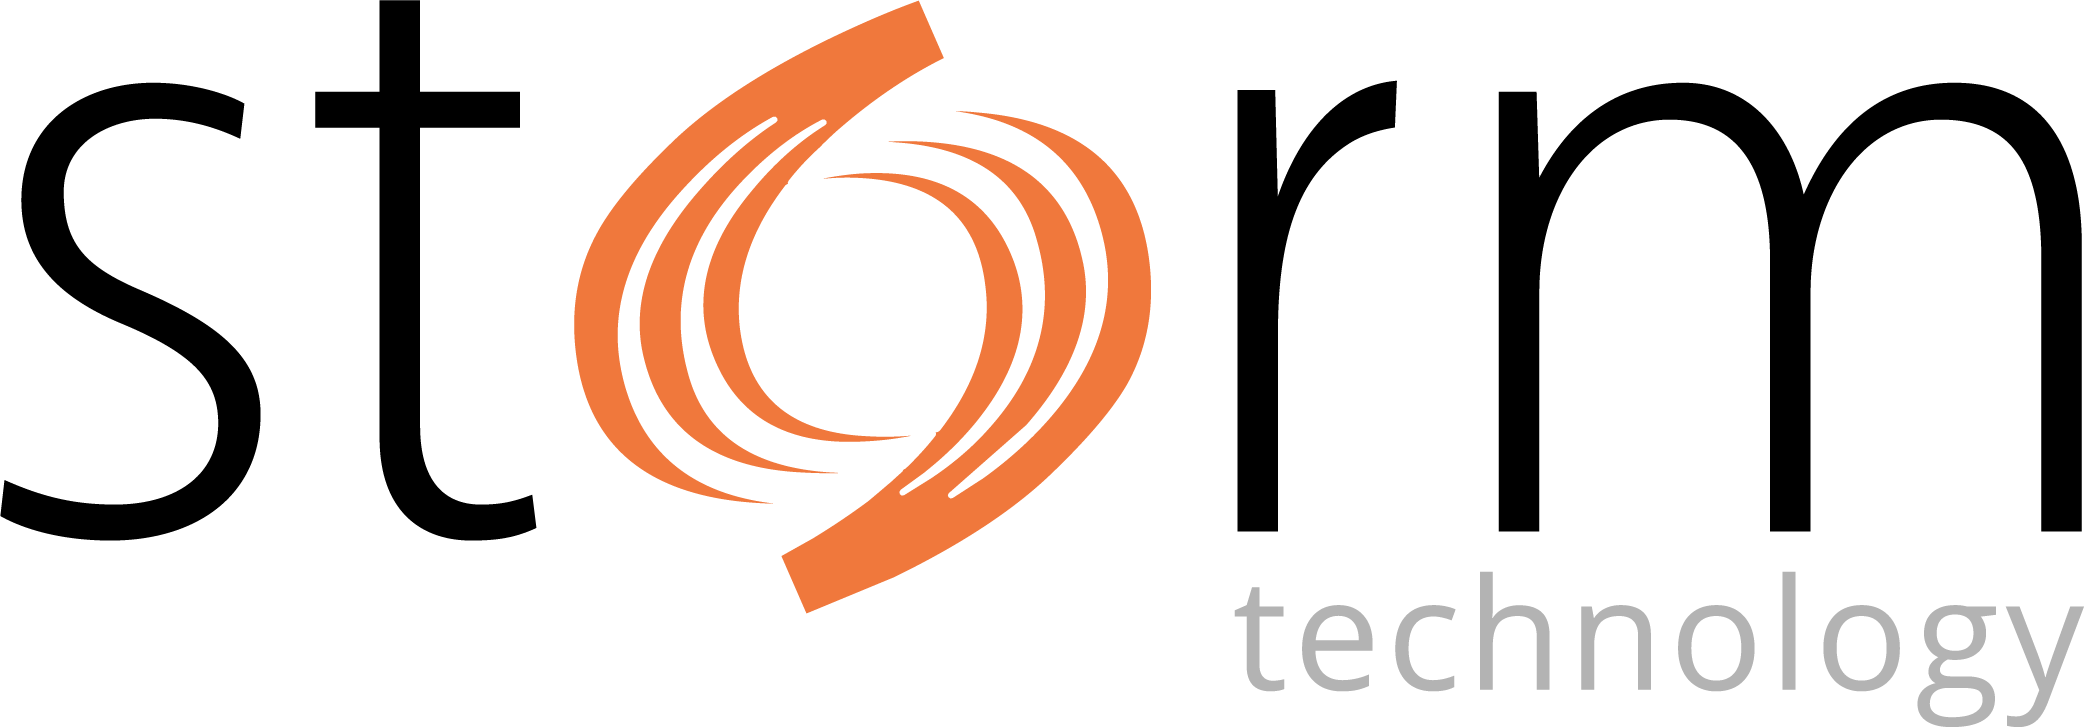 Storm Technology Logo